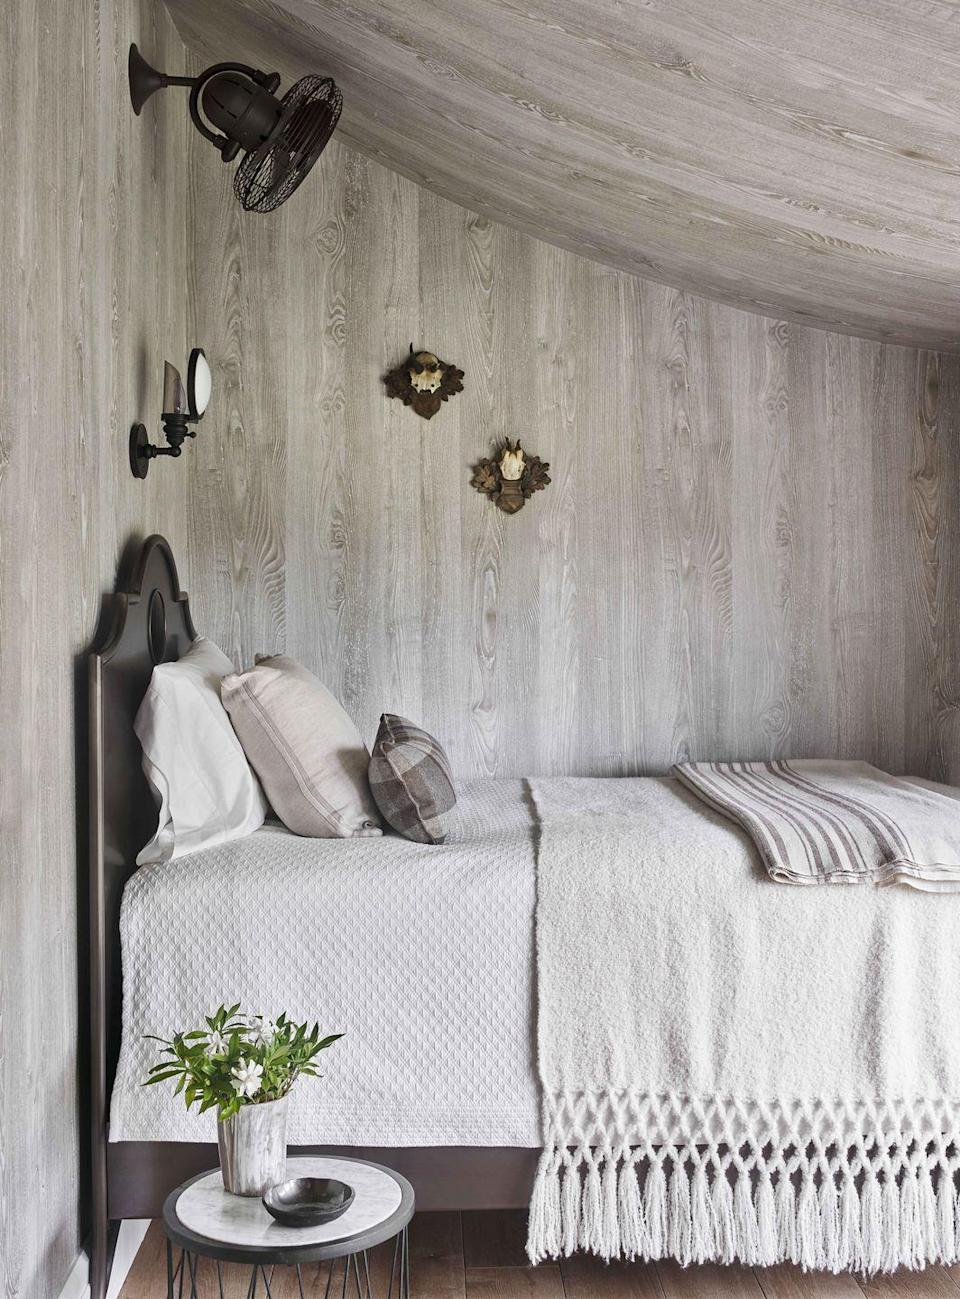 """<p>In this Low Country home designed by Beth Webb, a cozy guest nook—one of three bedrooms tucked on the second floor—reveals the soft swoop of the roof clad with a faux-bois wallcovering (<a href=""""https://nobilis.fr/en/"""" rel=""""nofollow noopener"""" target=""""_blank"""" data-ylk=""""slk:Nobilis"""" class=""""link rapid-noclick-resp"""">Nobilis</a>). """"It's like sleeping under a tent, which is fitting out in the country,"""" says <a href=""""https://www.peterblockarchitects.com/"""" rel=""""nofollow noopener"""" target=""""_blank"""" data-ylk=""""slk:architect Peter Block"""" class=""""link rapid-noclick-resp"""">architect Peter Block</a>. Sconce and fan, <a href=""""https://www.circalighting.com/"""" rel=""""nofollow noopener"""" target=""""_blank"""" data-ylk=""""slk:Circa Lighting"""" class=""""link rapid-noclick-resp"""">Circa Lighting</a></p>"""